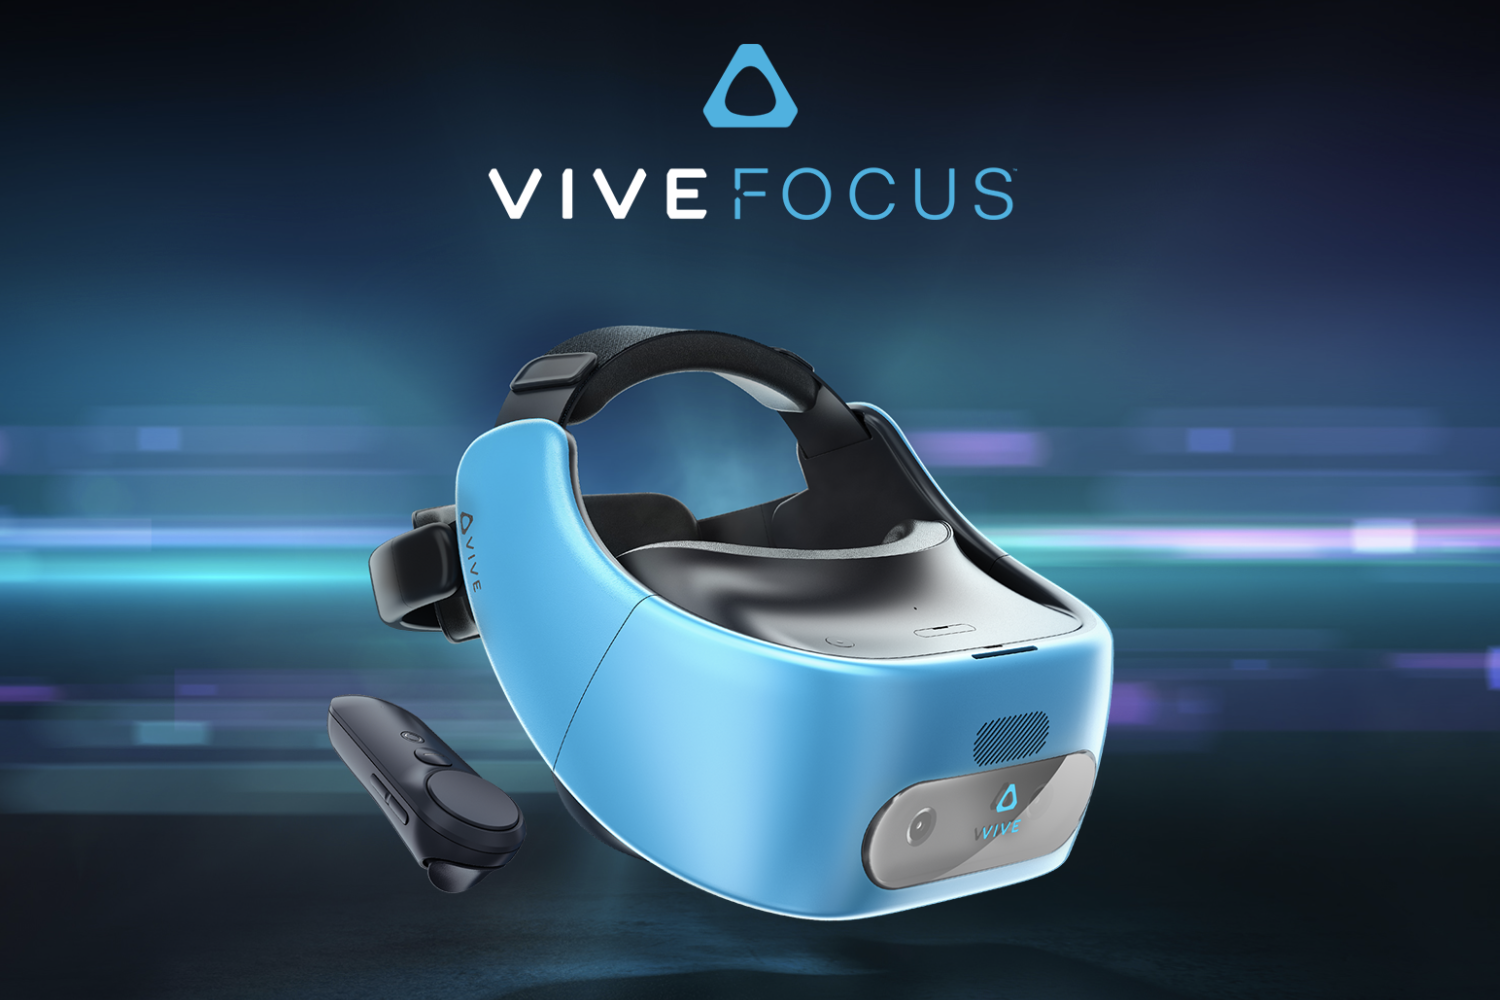 HTC reveals Vive Focus, a VR headset that cuts the cables